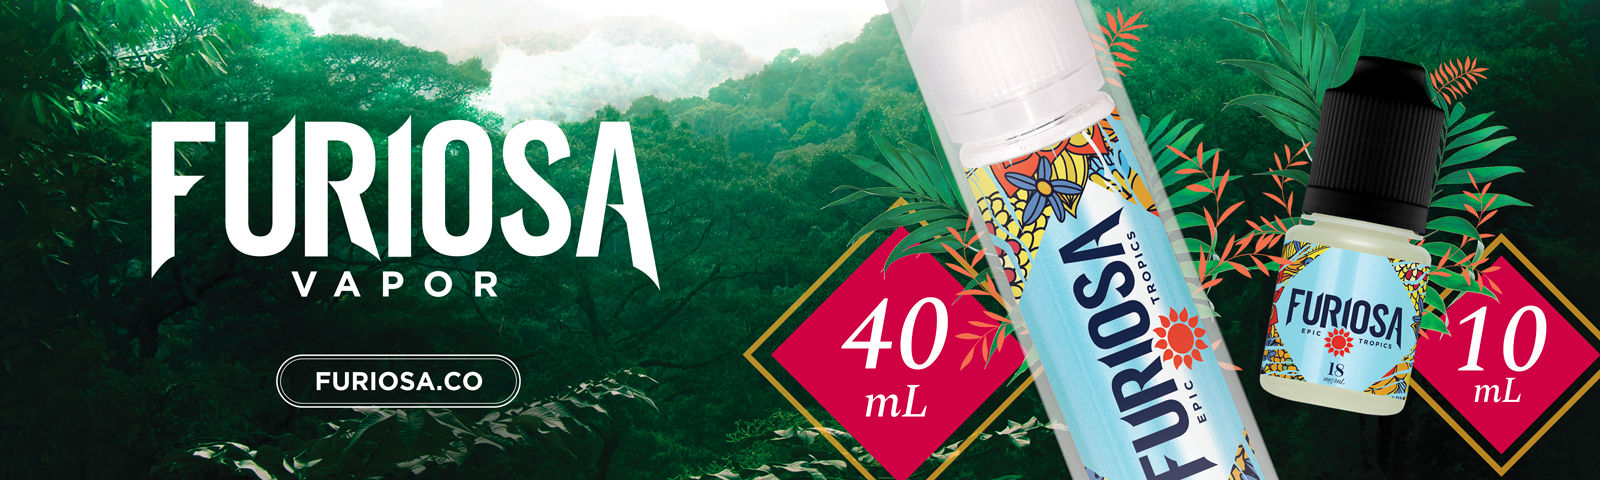 Furiosa Vapor, jungle trouble, Lava drops, Epic tropic, Ice Beam, Dragon clouds, e-liquide